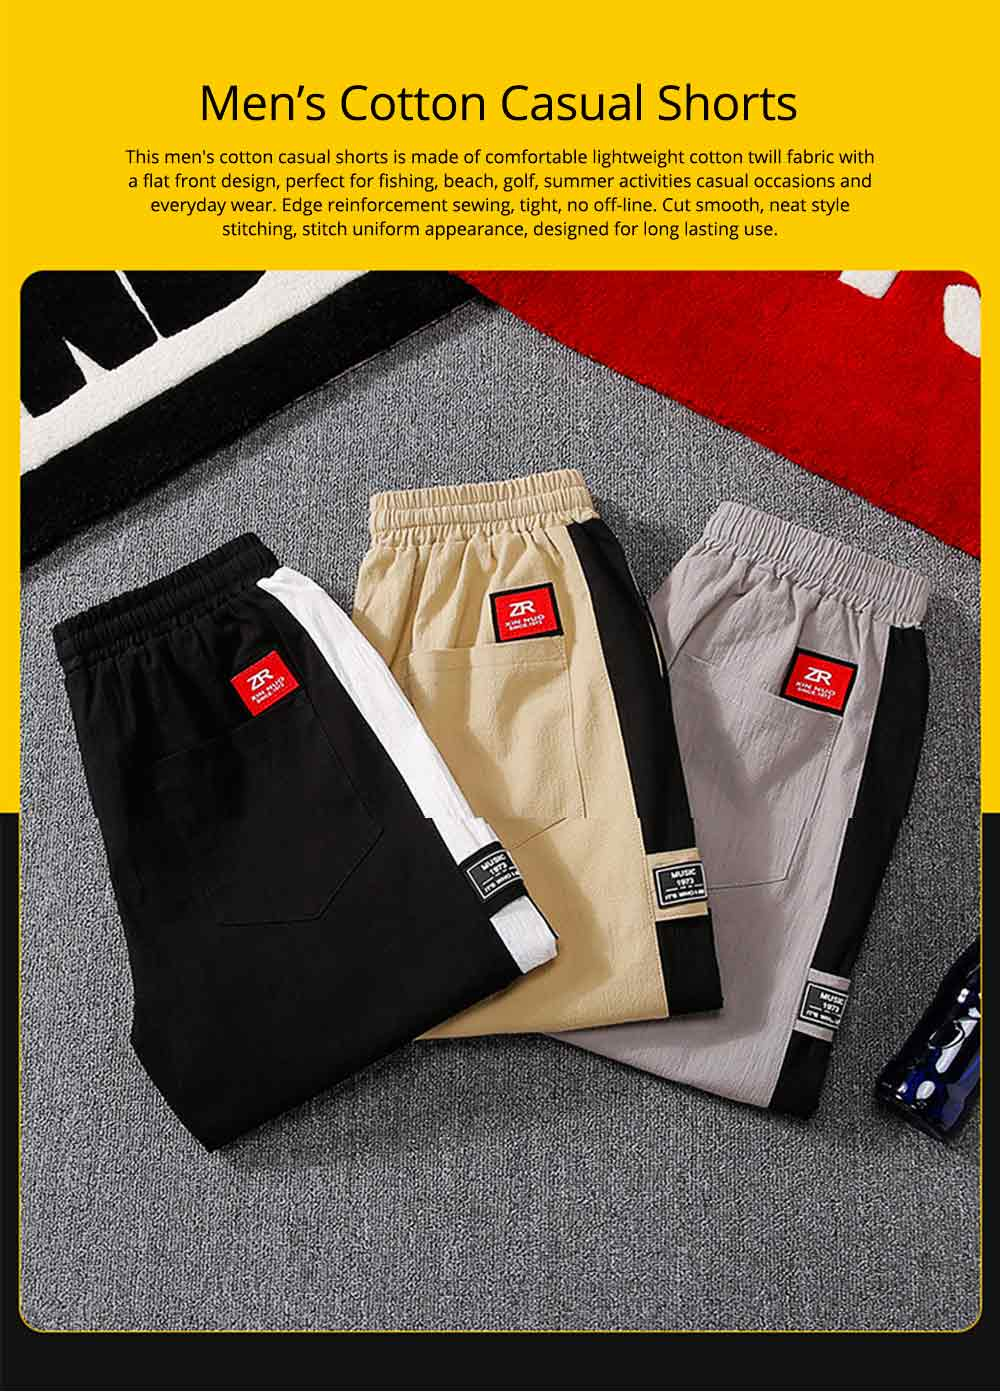 Men's Cotton Casual Shorts with Elastic Waist Drawstring, Classic Fit Short Summer Beach Shorts for Youth Men 0